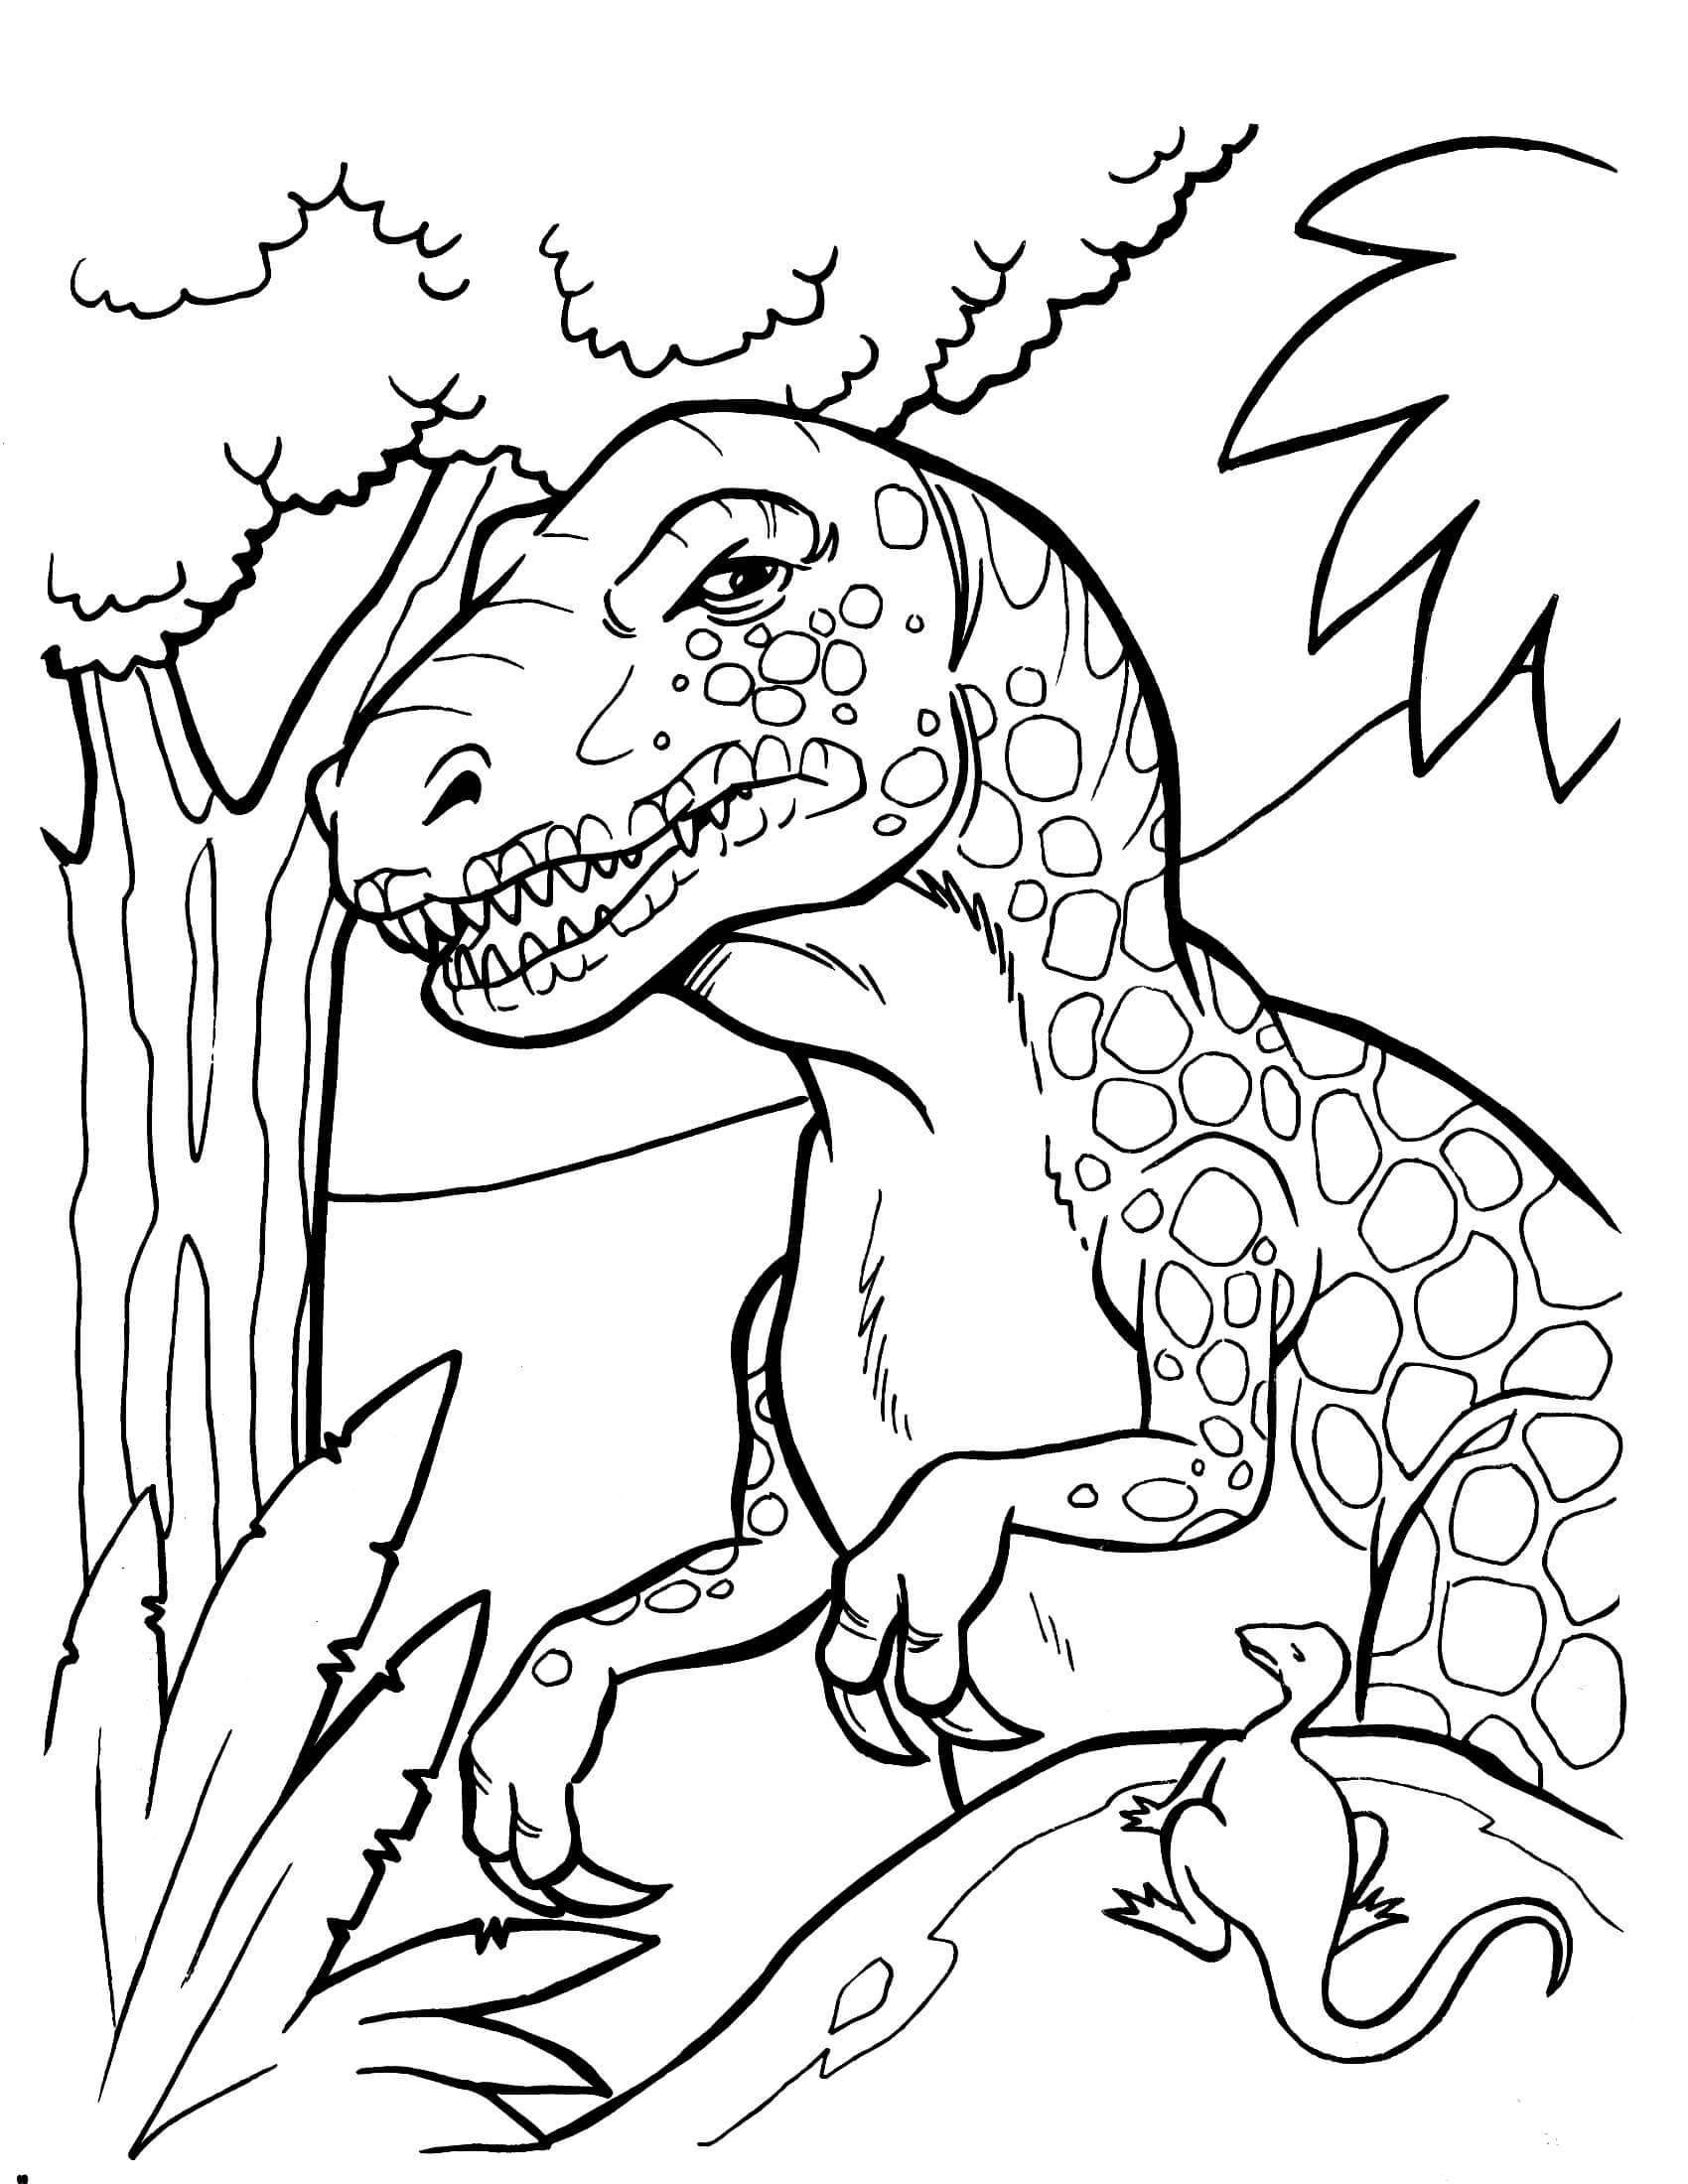 dinosaurs printable coloring pages dinosaurs to print triceratops dinosaurs kids coloring pages dinosaurs coloring printable